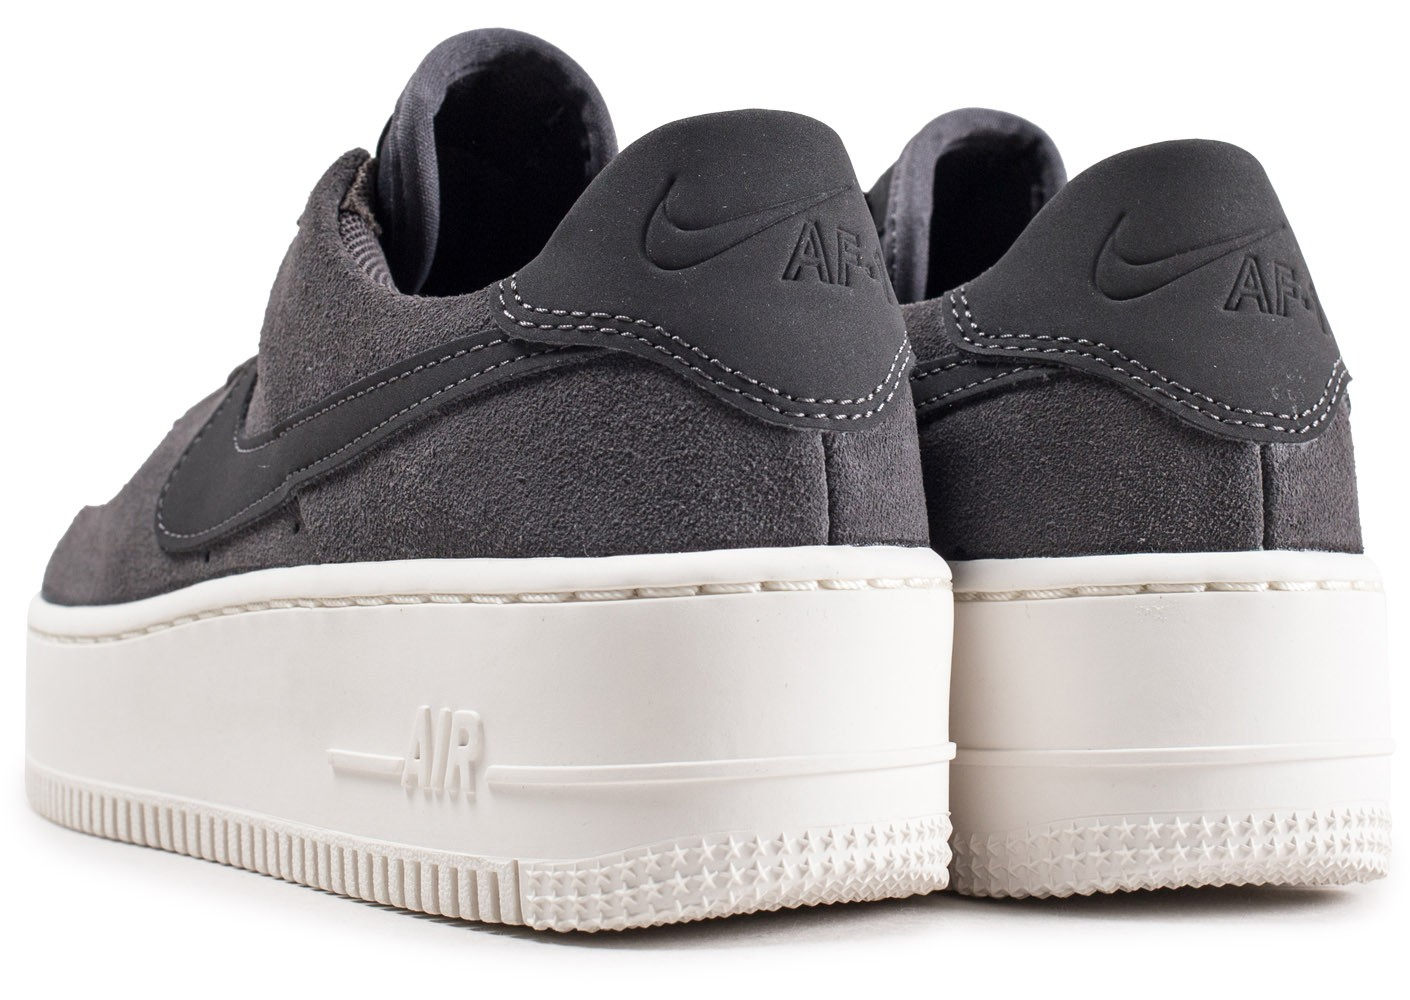 Nike Air Force 1 Sage Low gris femme - Chaussures Baskets ...